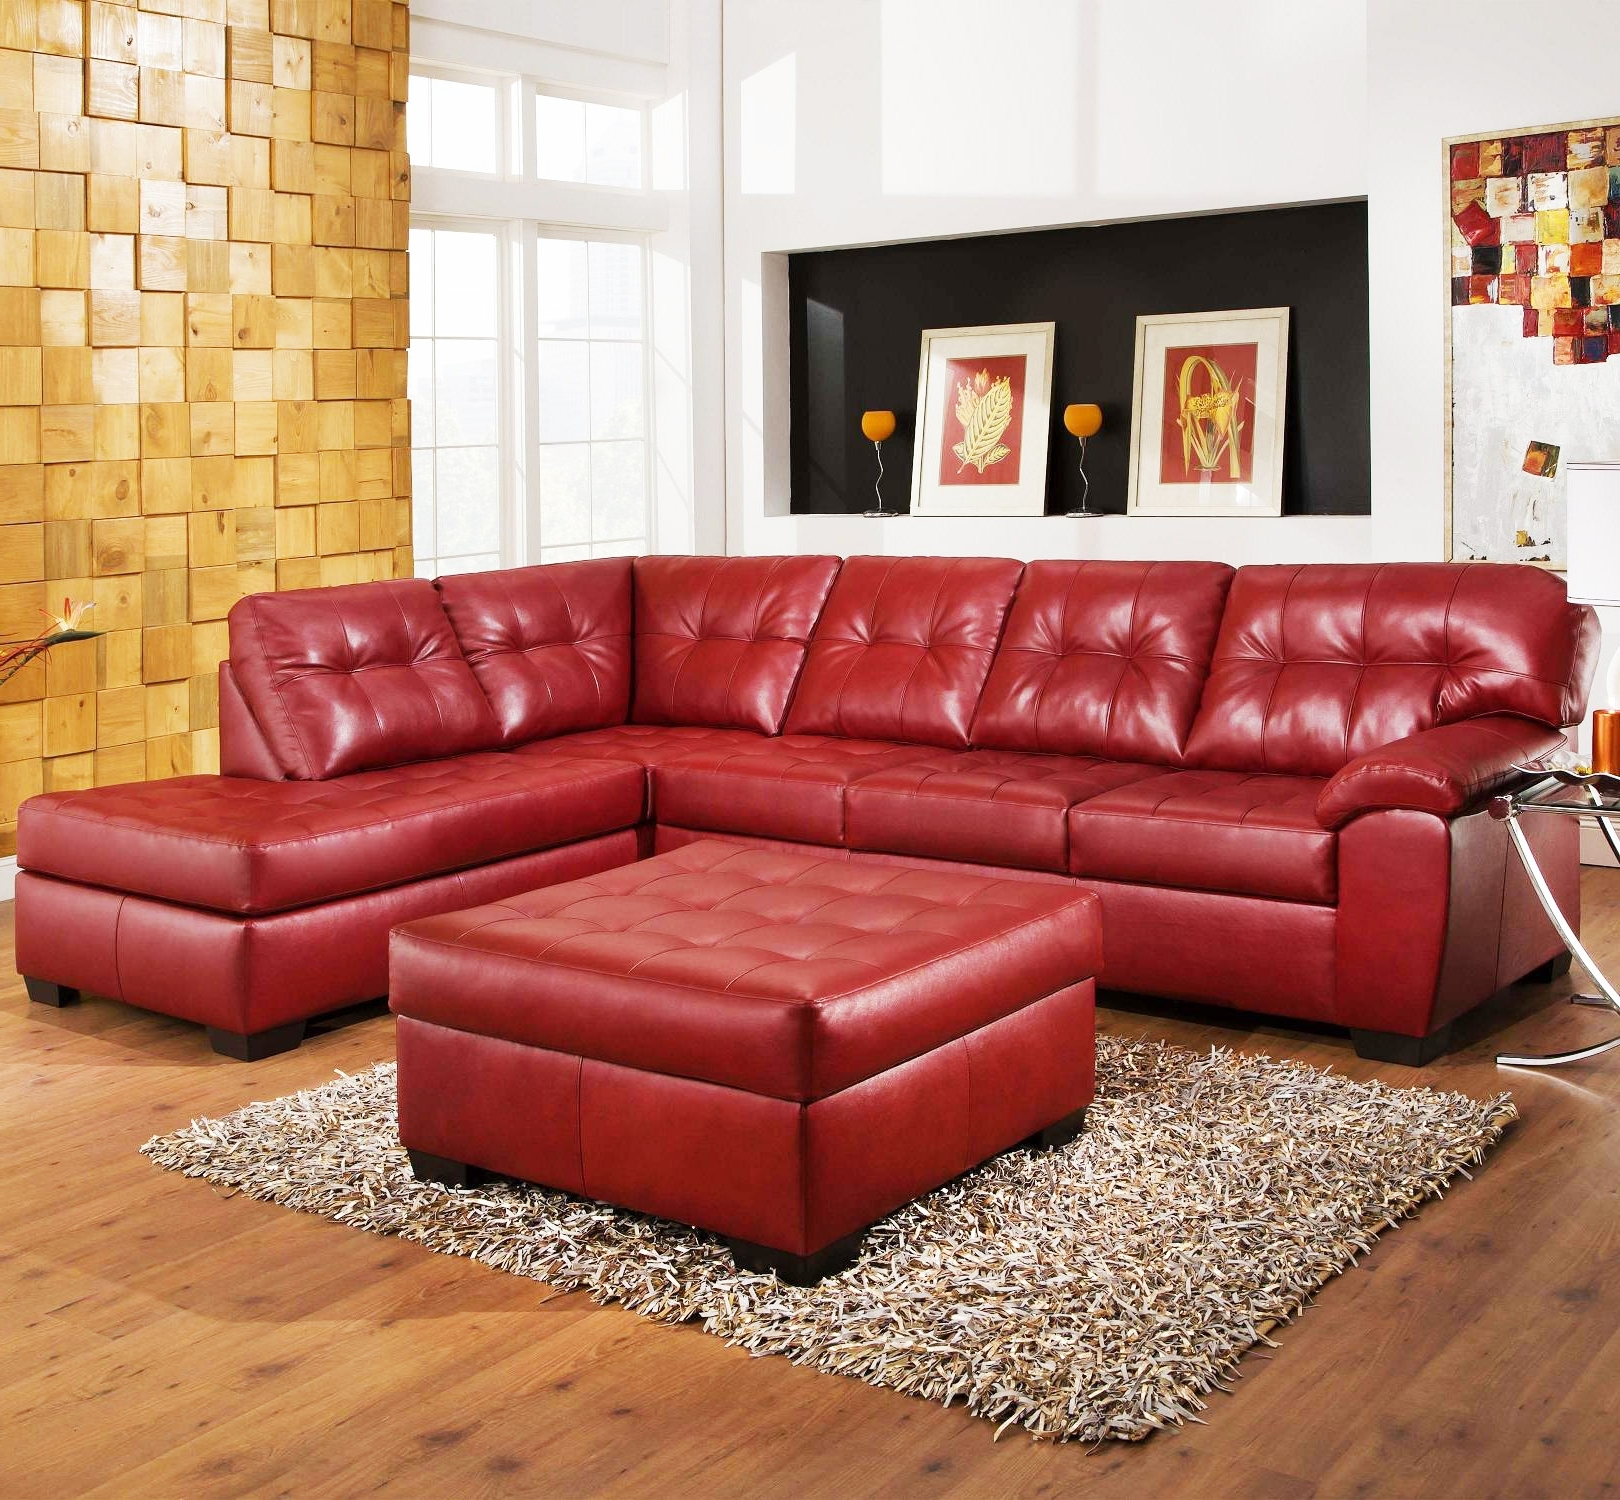 Red Faux Leather Sectionals For Best And Newest Living Room: Astonishing Rooms To Go Sectional Leather Rooms To Go (View 8 of 15)